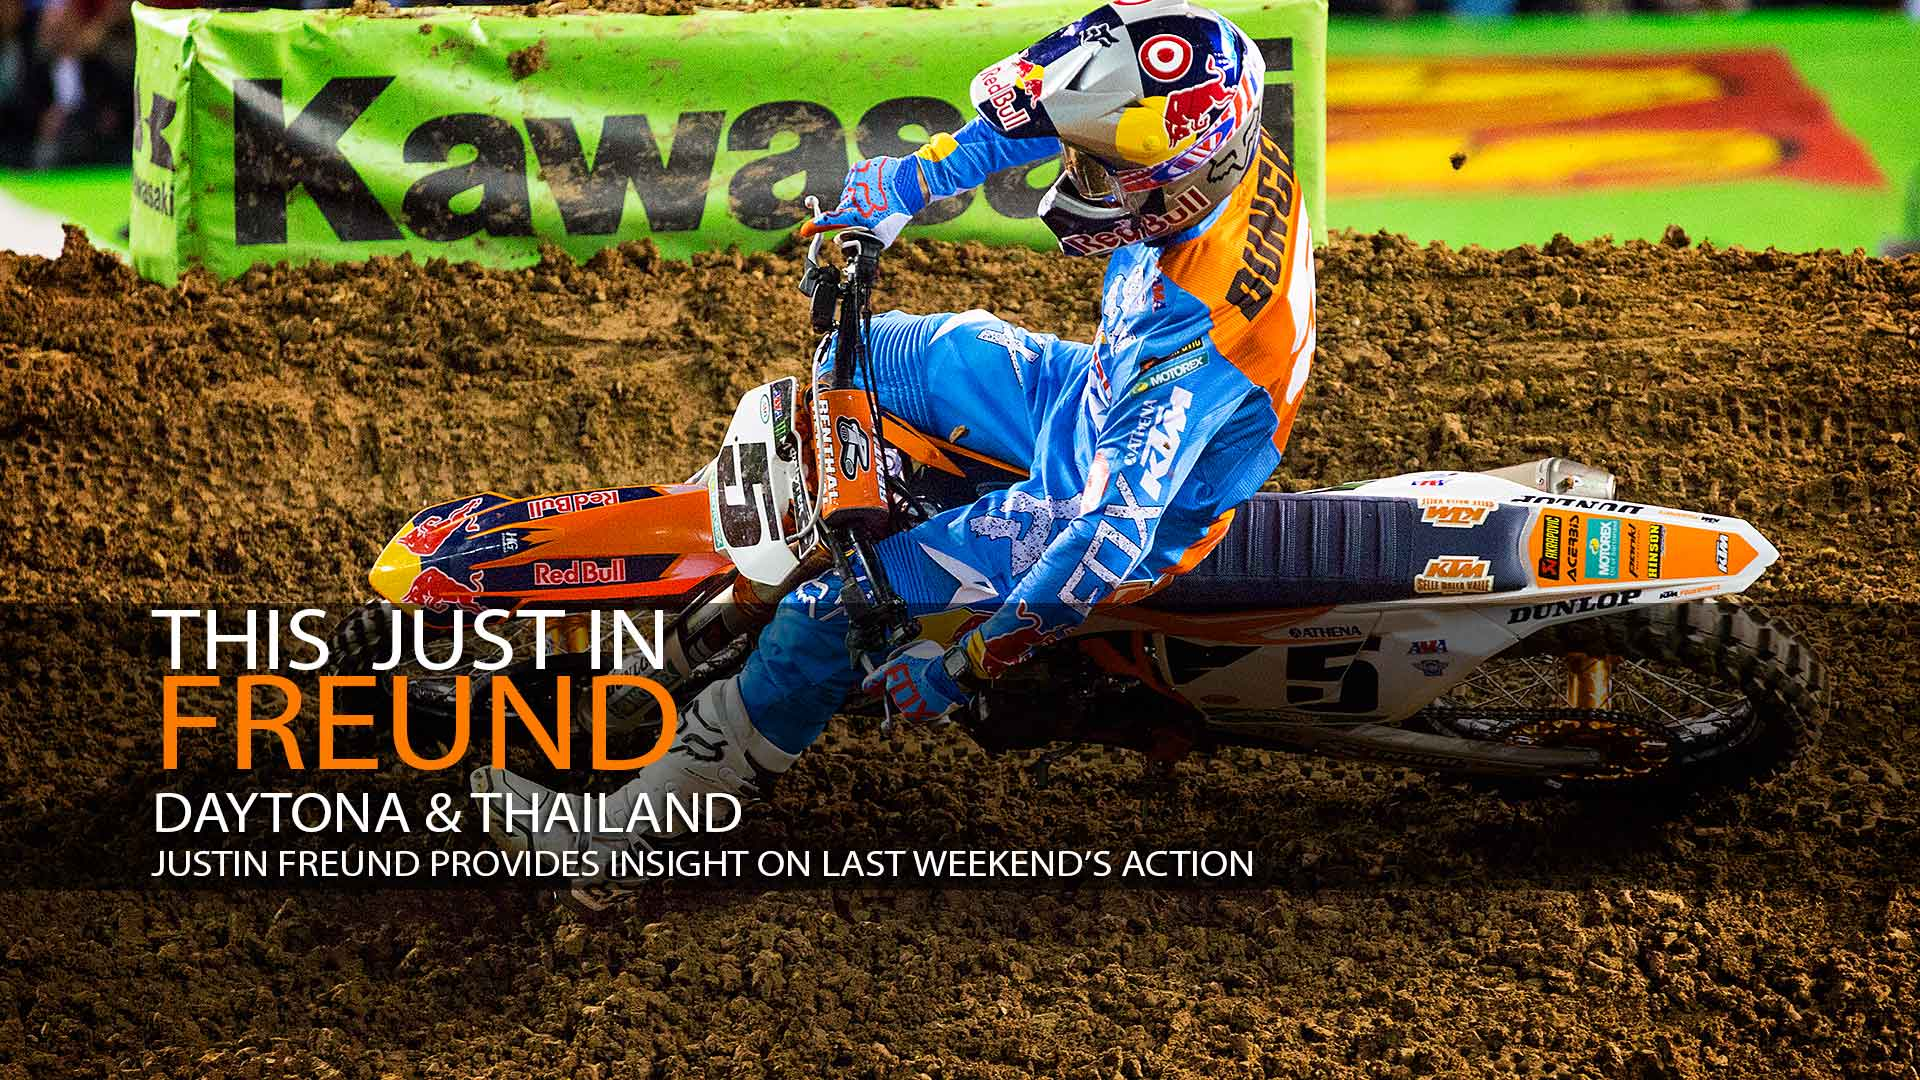 This Just In Freund: Daytona & Thailand